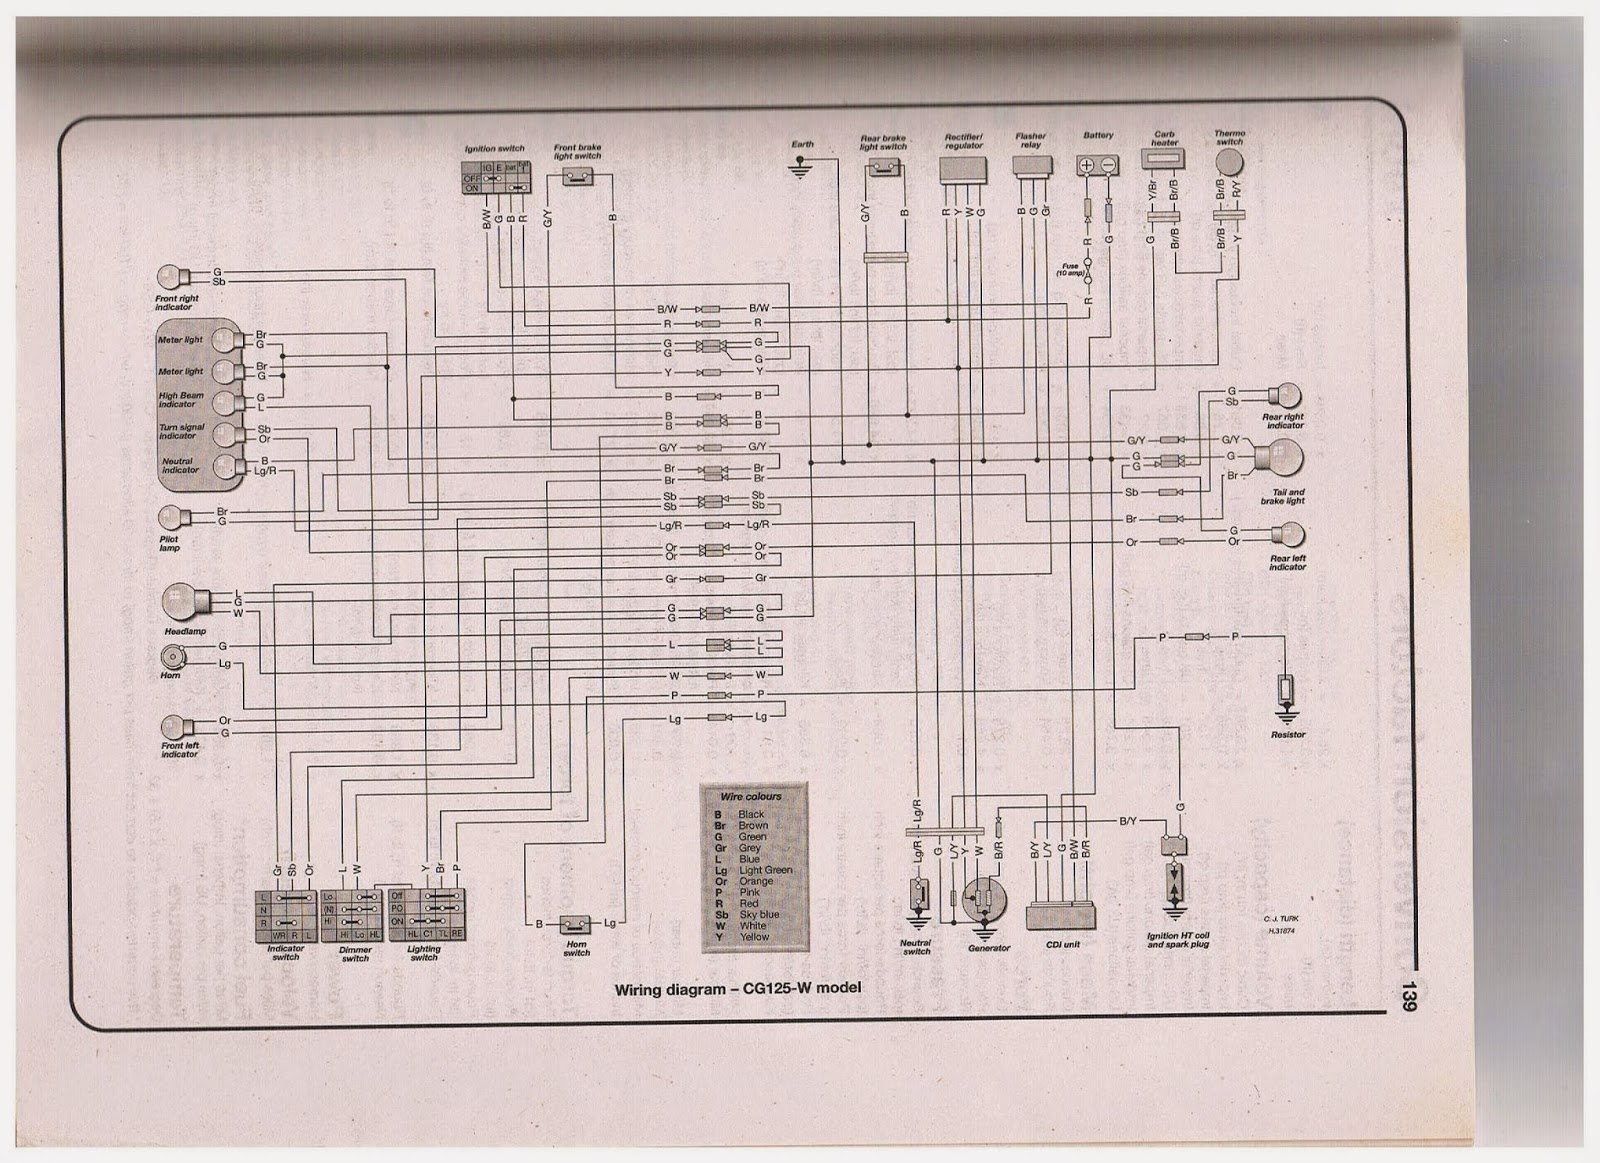 hight resolution of honda cg 125 wiring diagram wiring diagram rules honda 125cc wiring